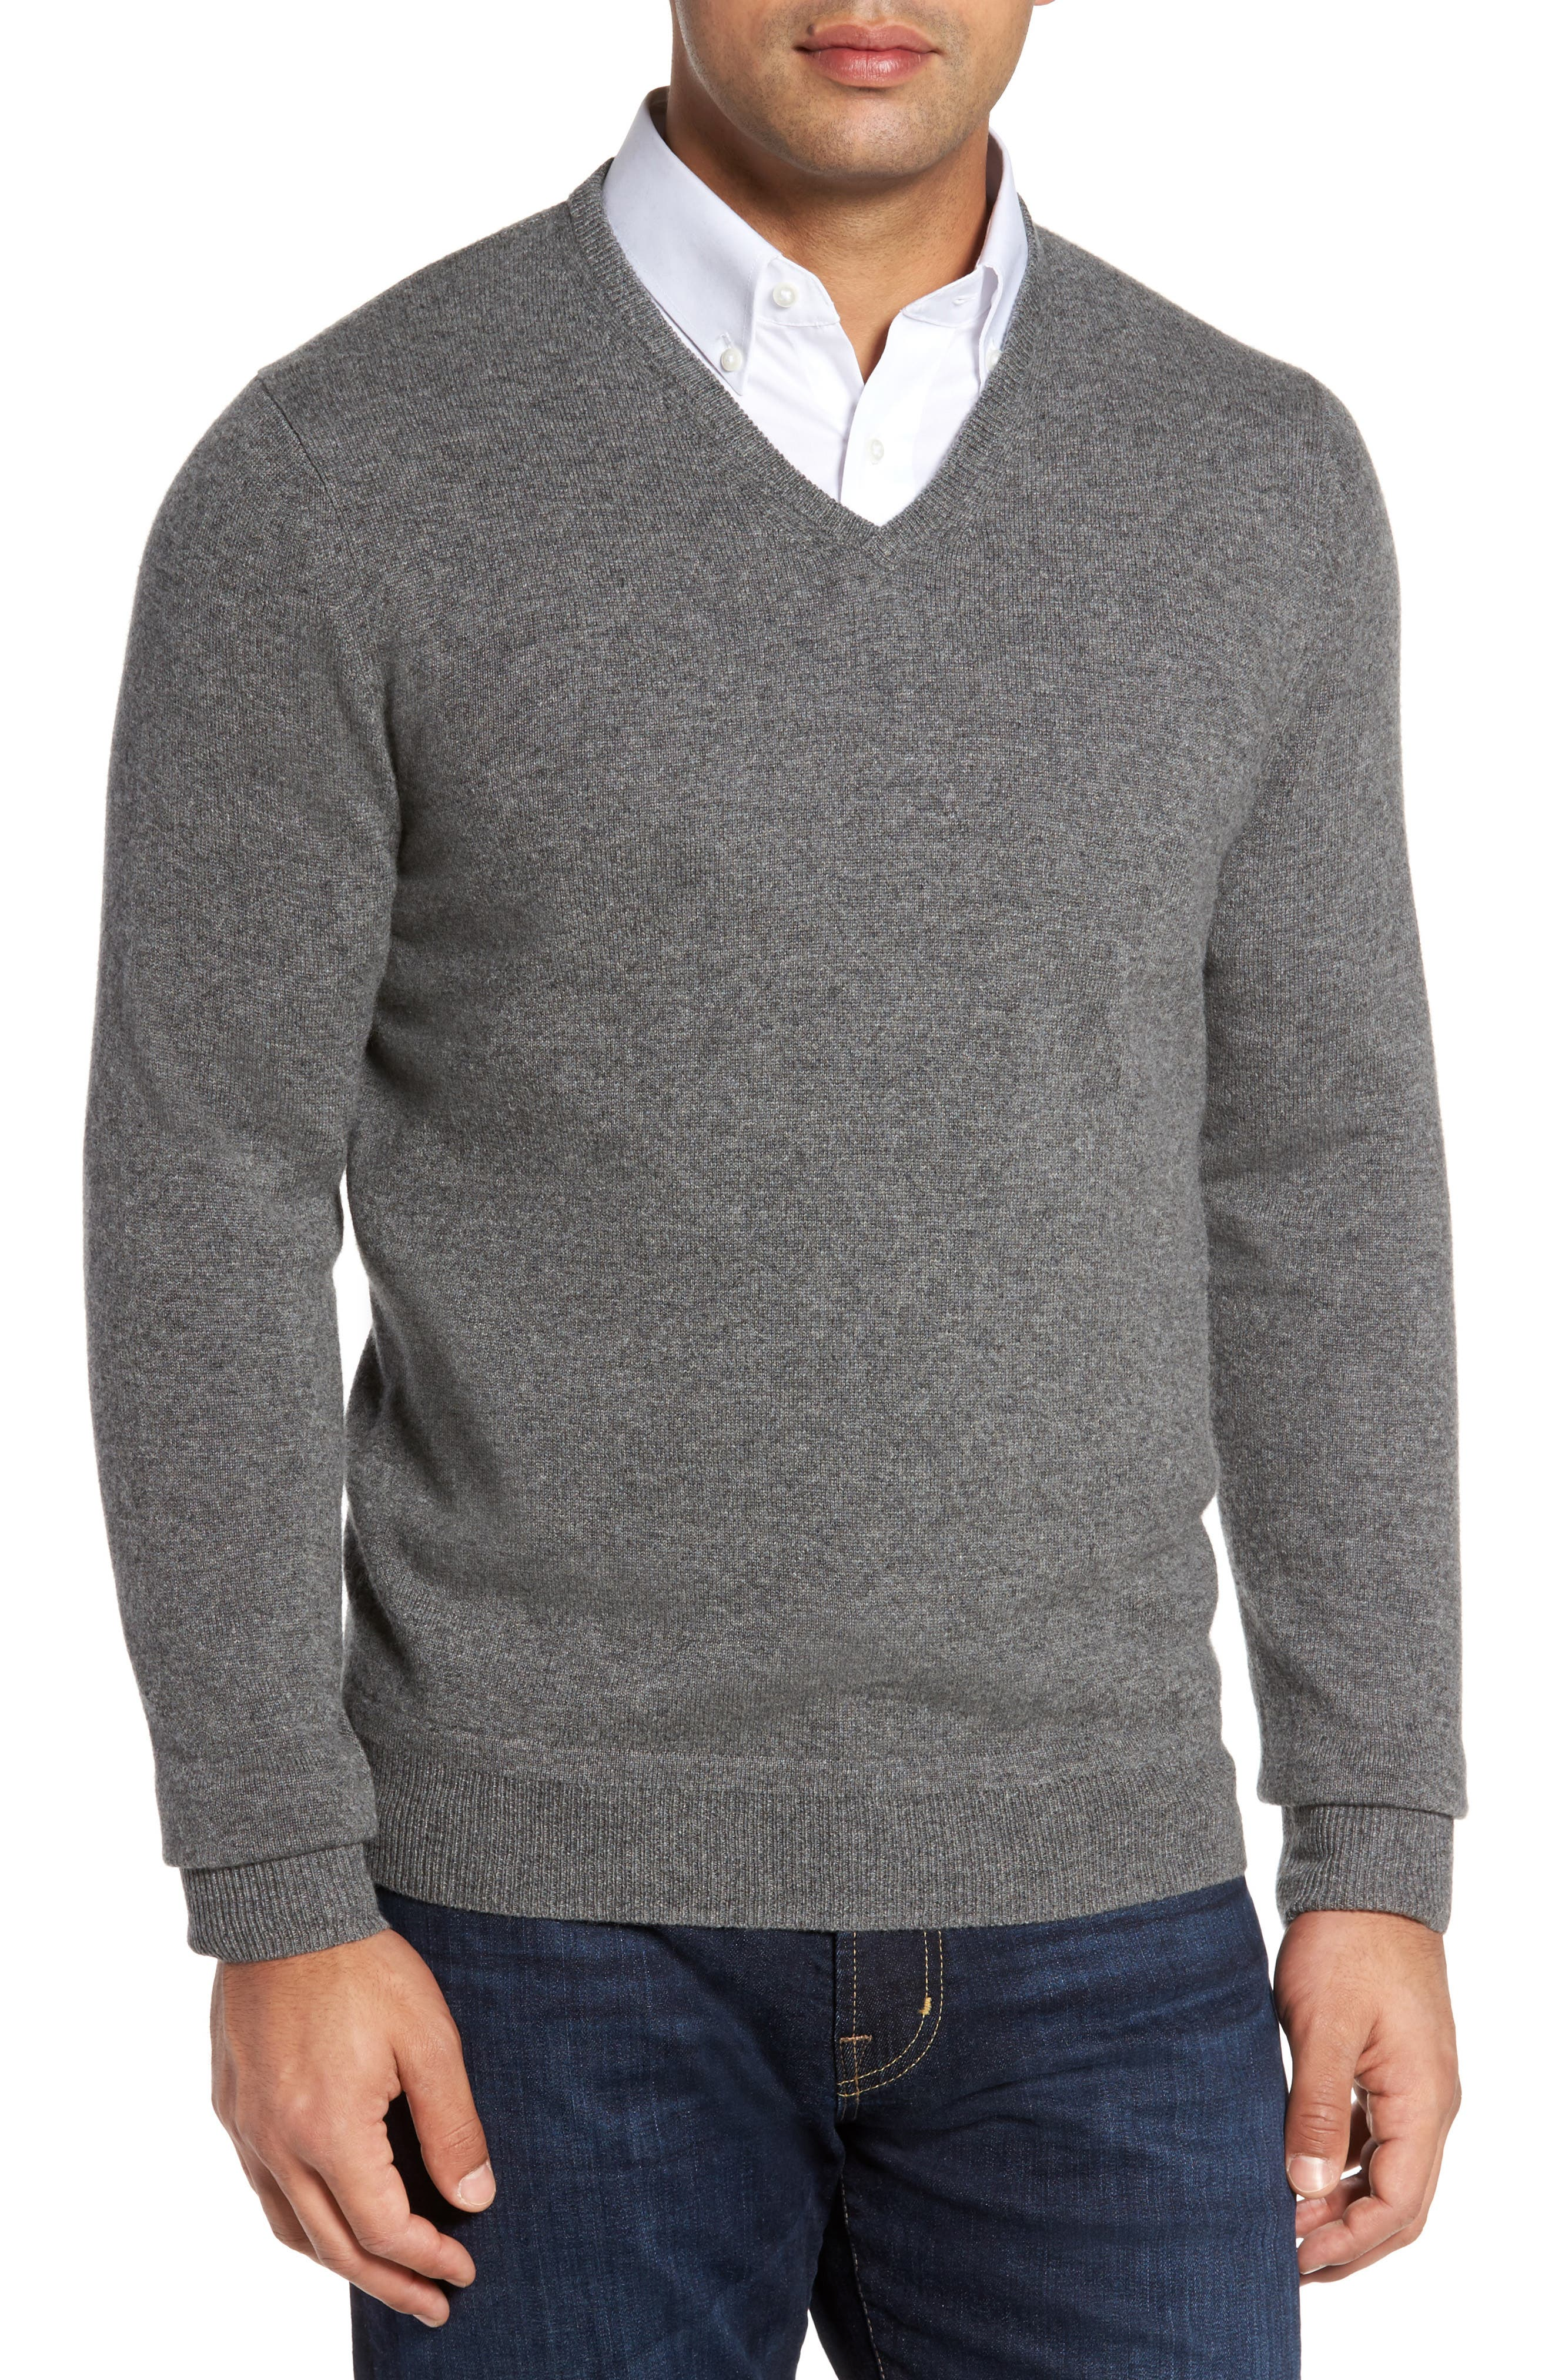 Alternate Image 1 Selected - Monte Rosso V-Neck Cashmere Sweater